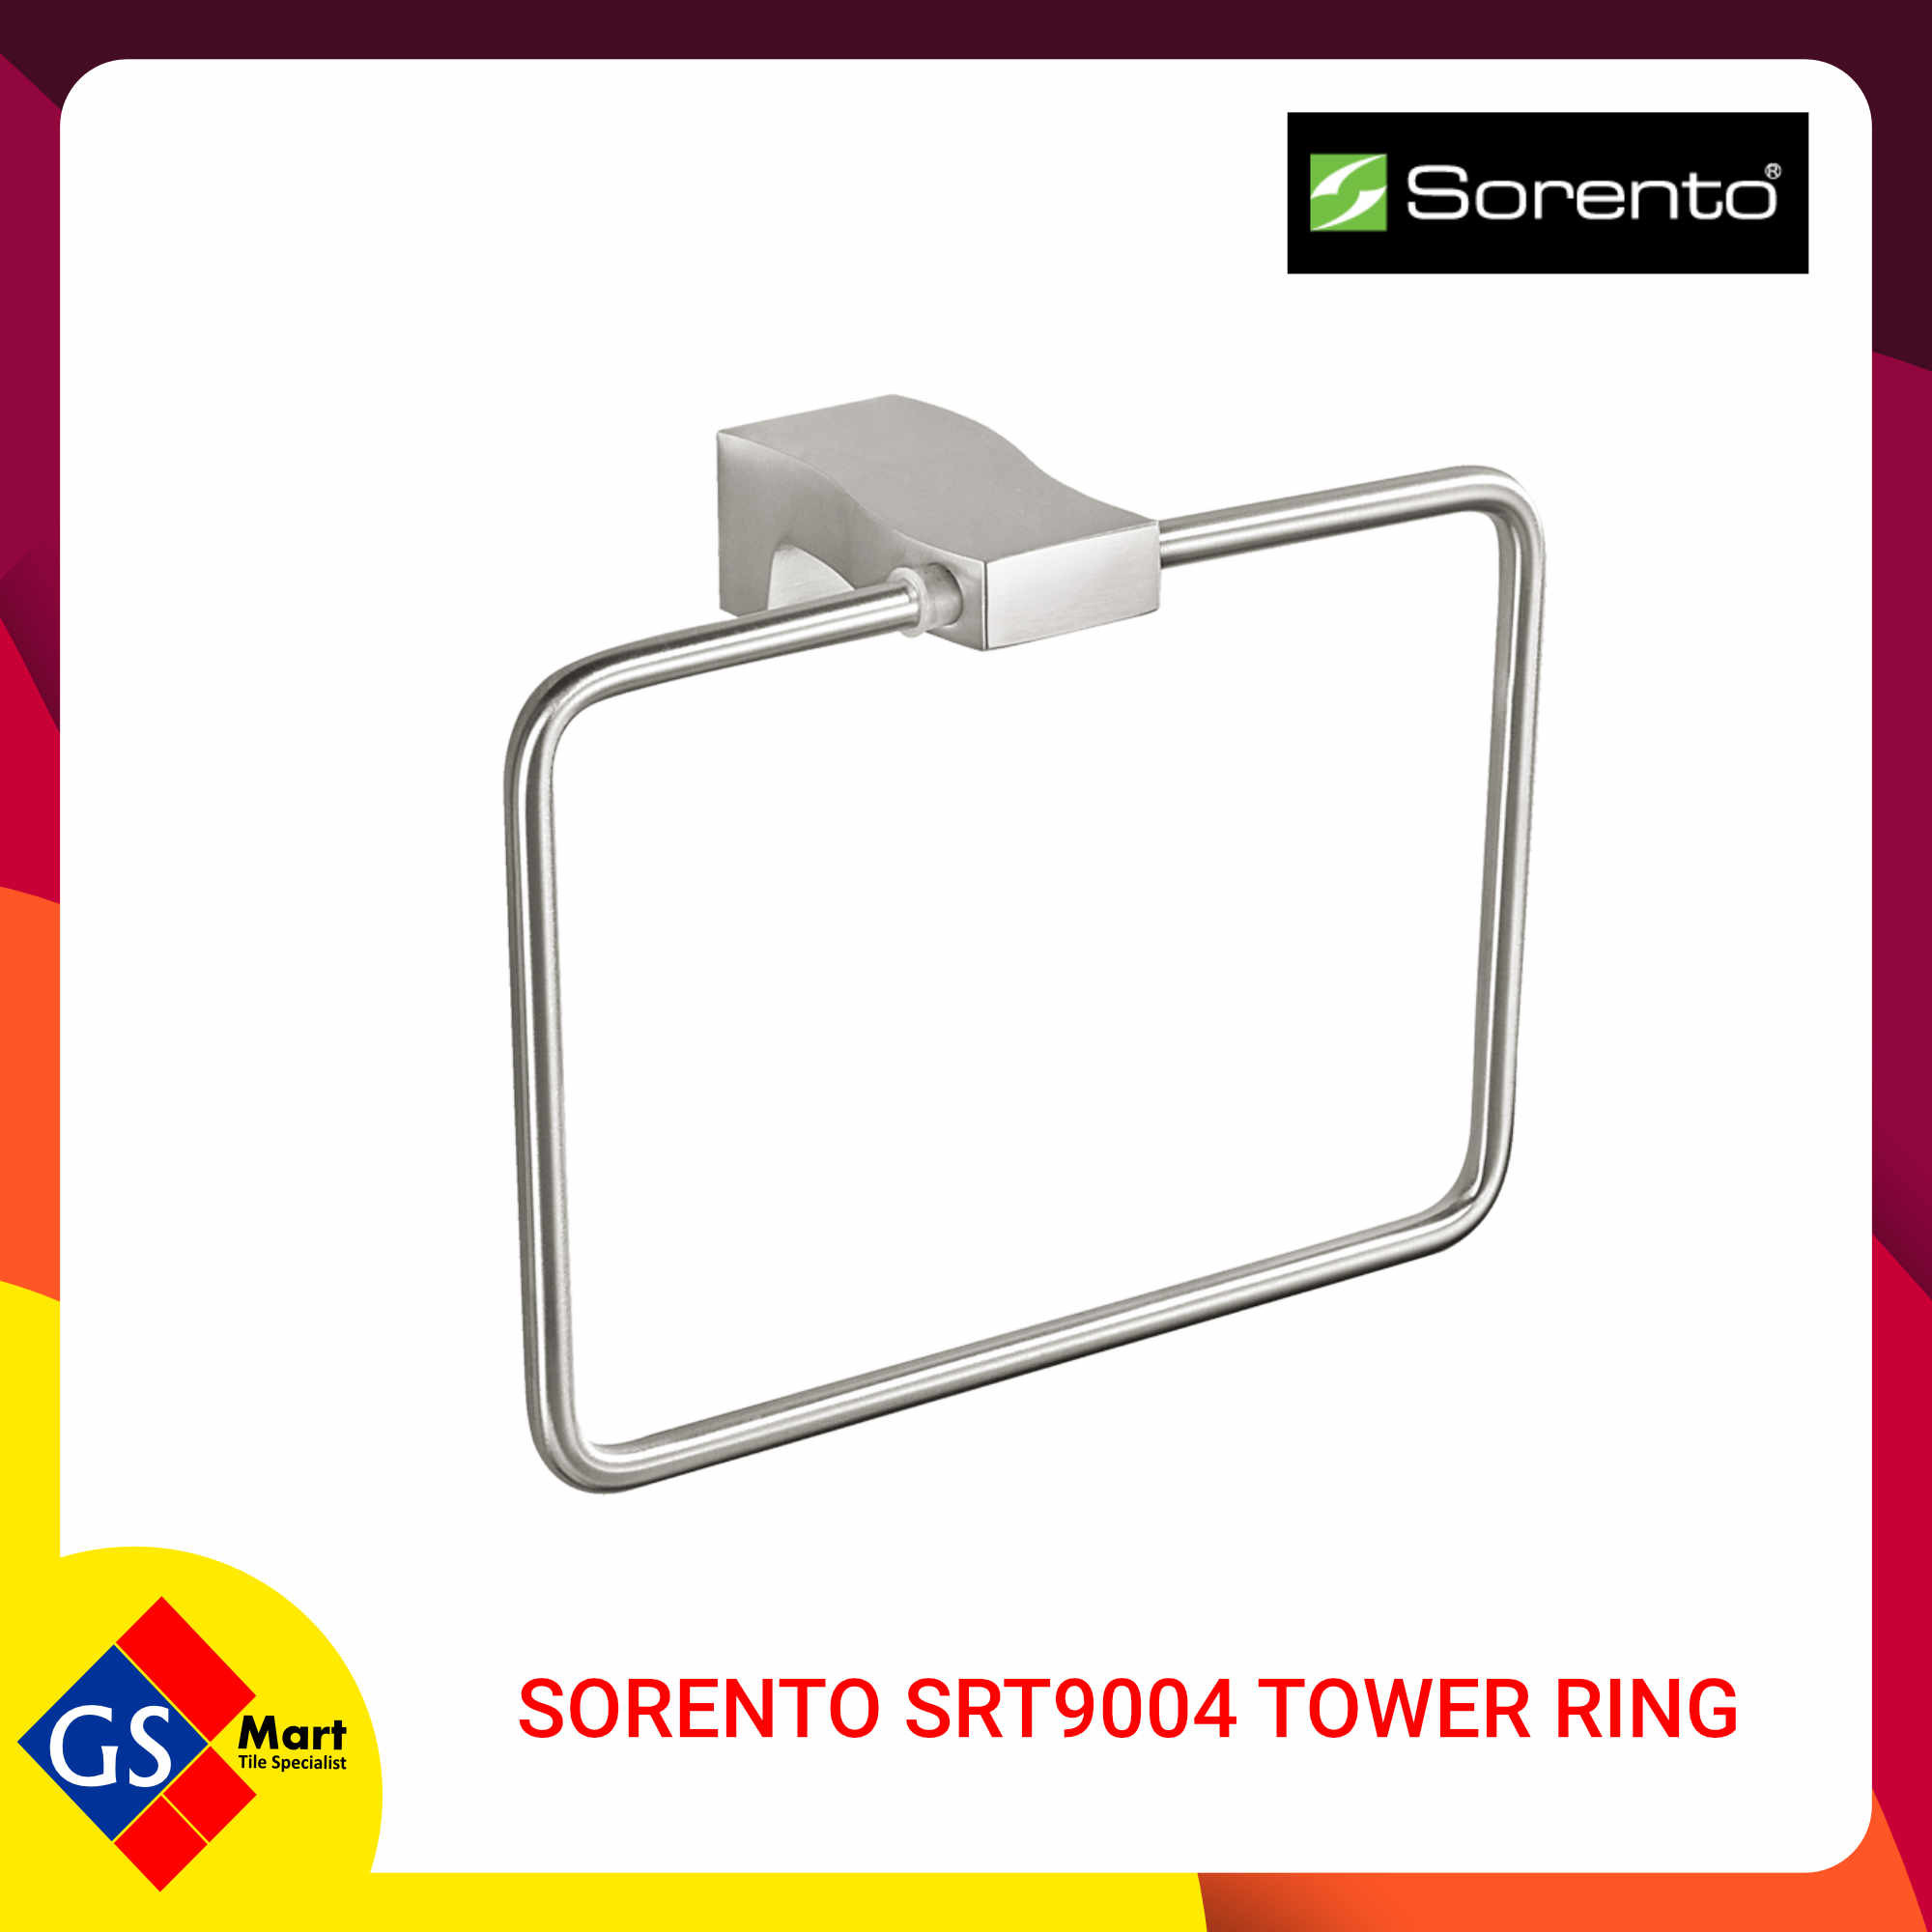 image of SORENTO SRT9004 TOWER RING